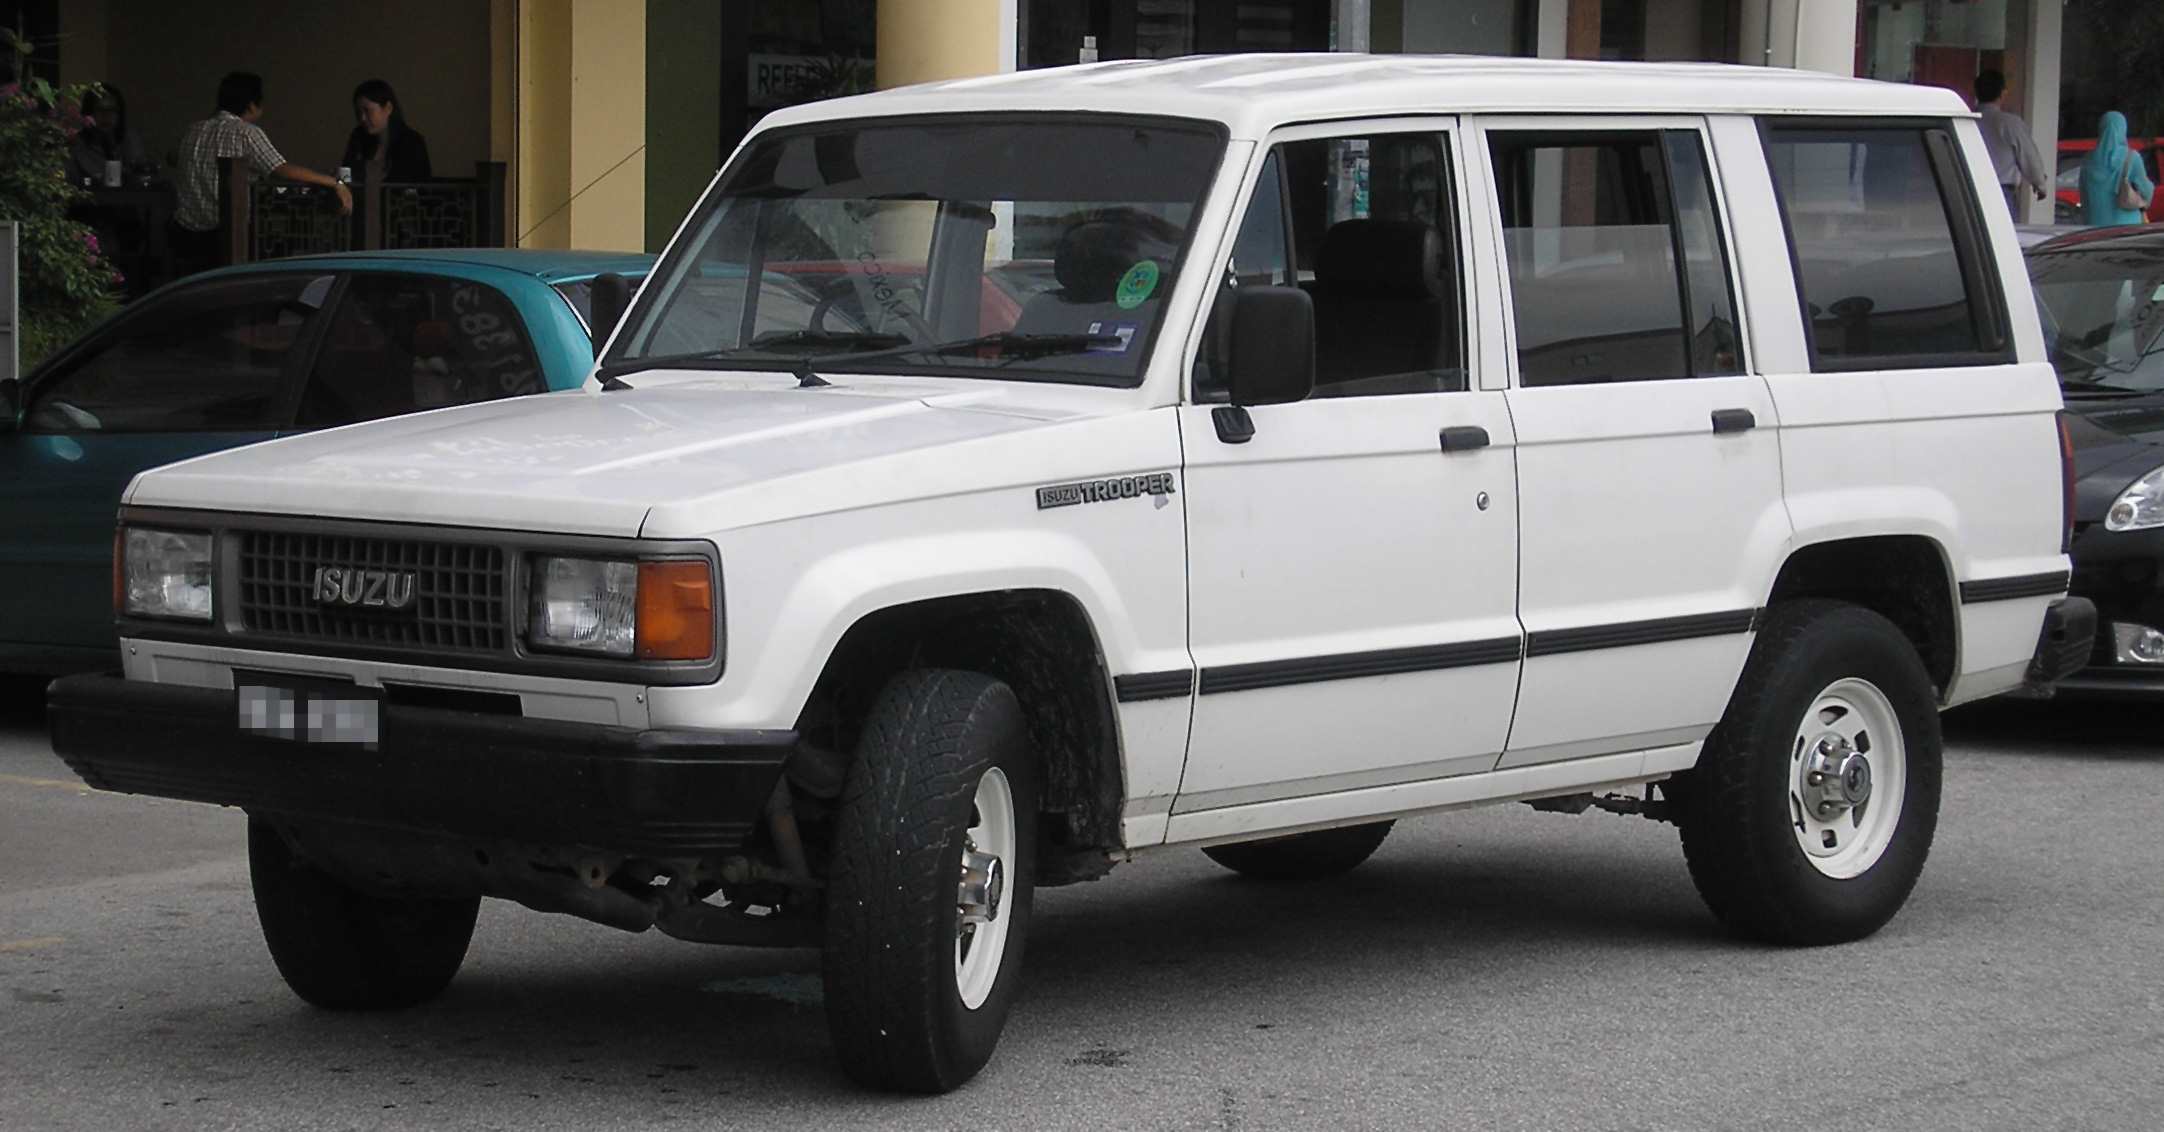 Isuzu_Trooper_%28first_generation,_first